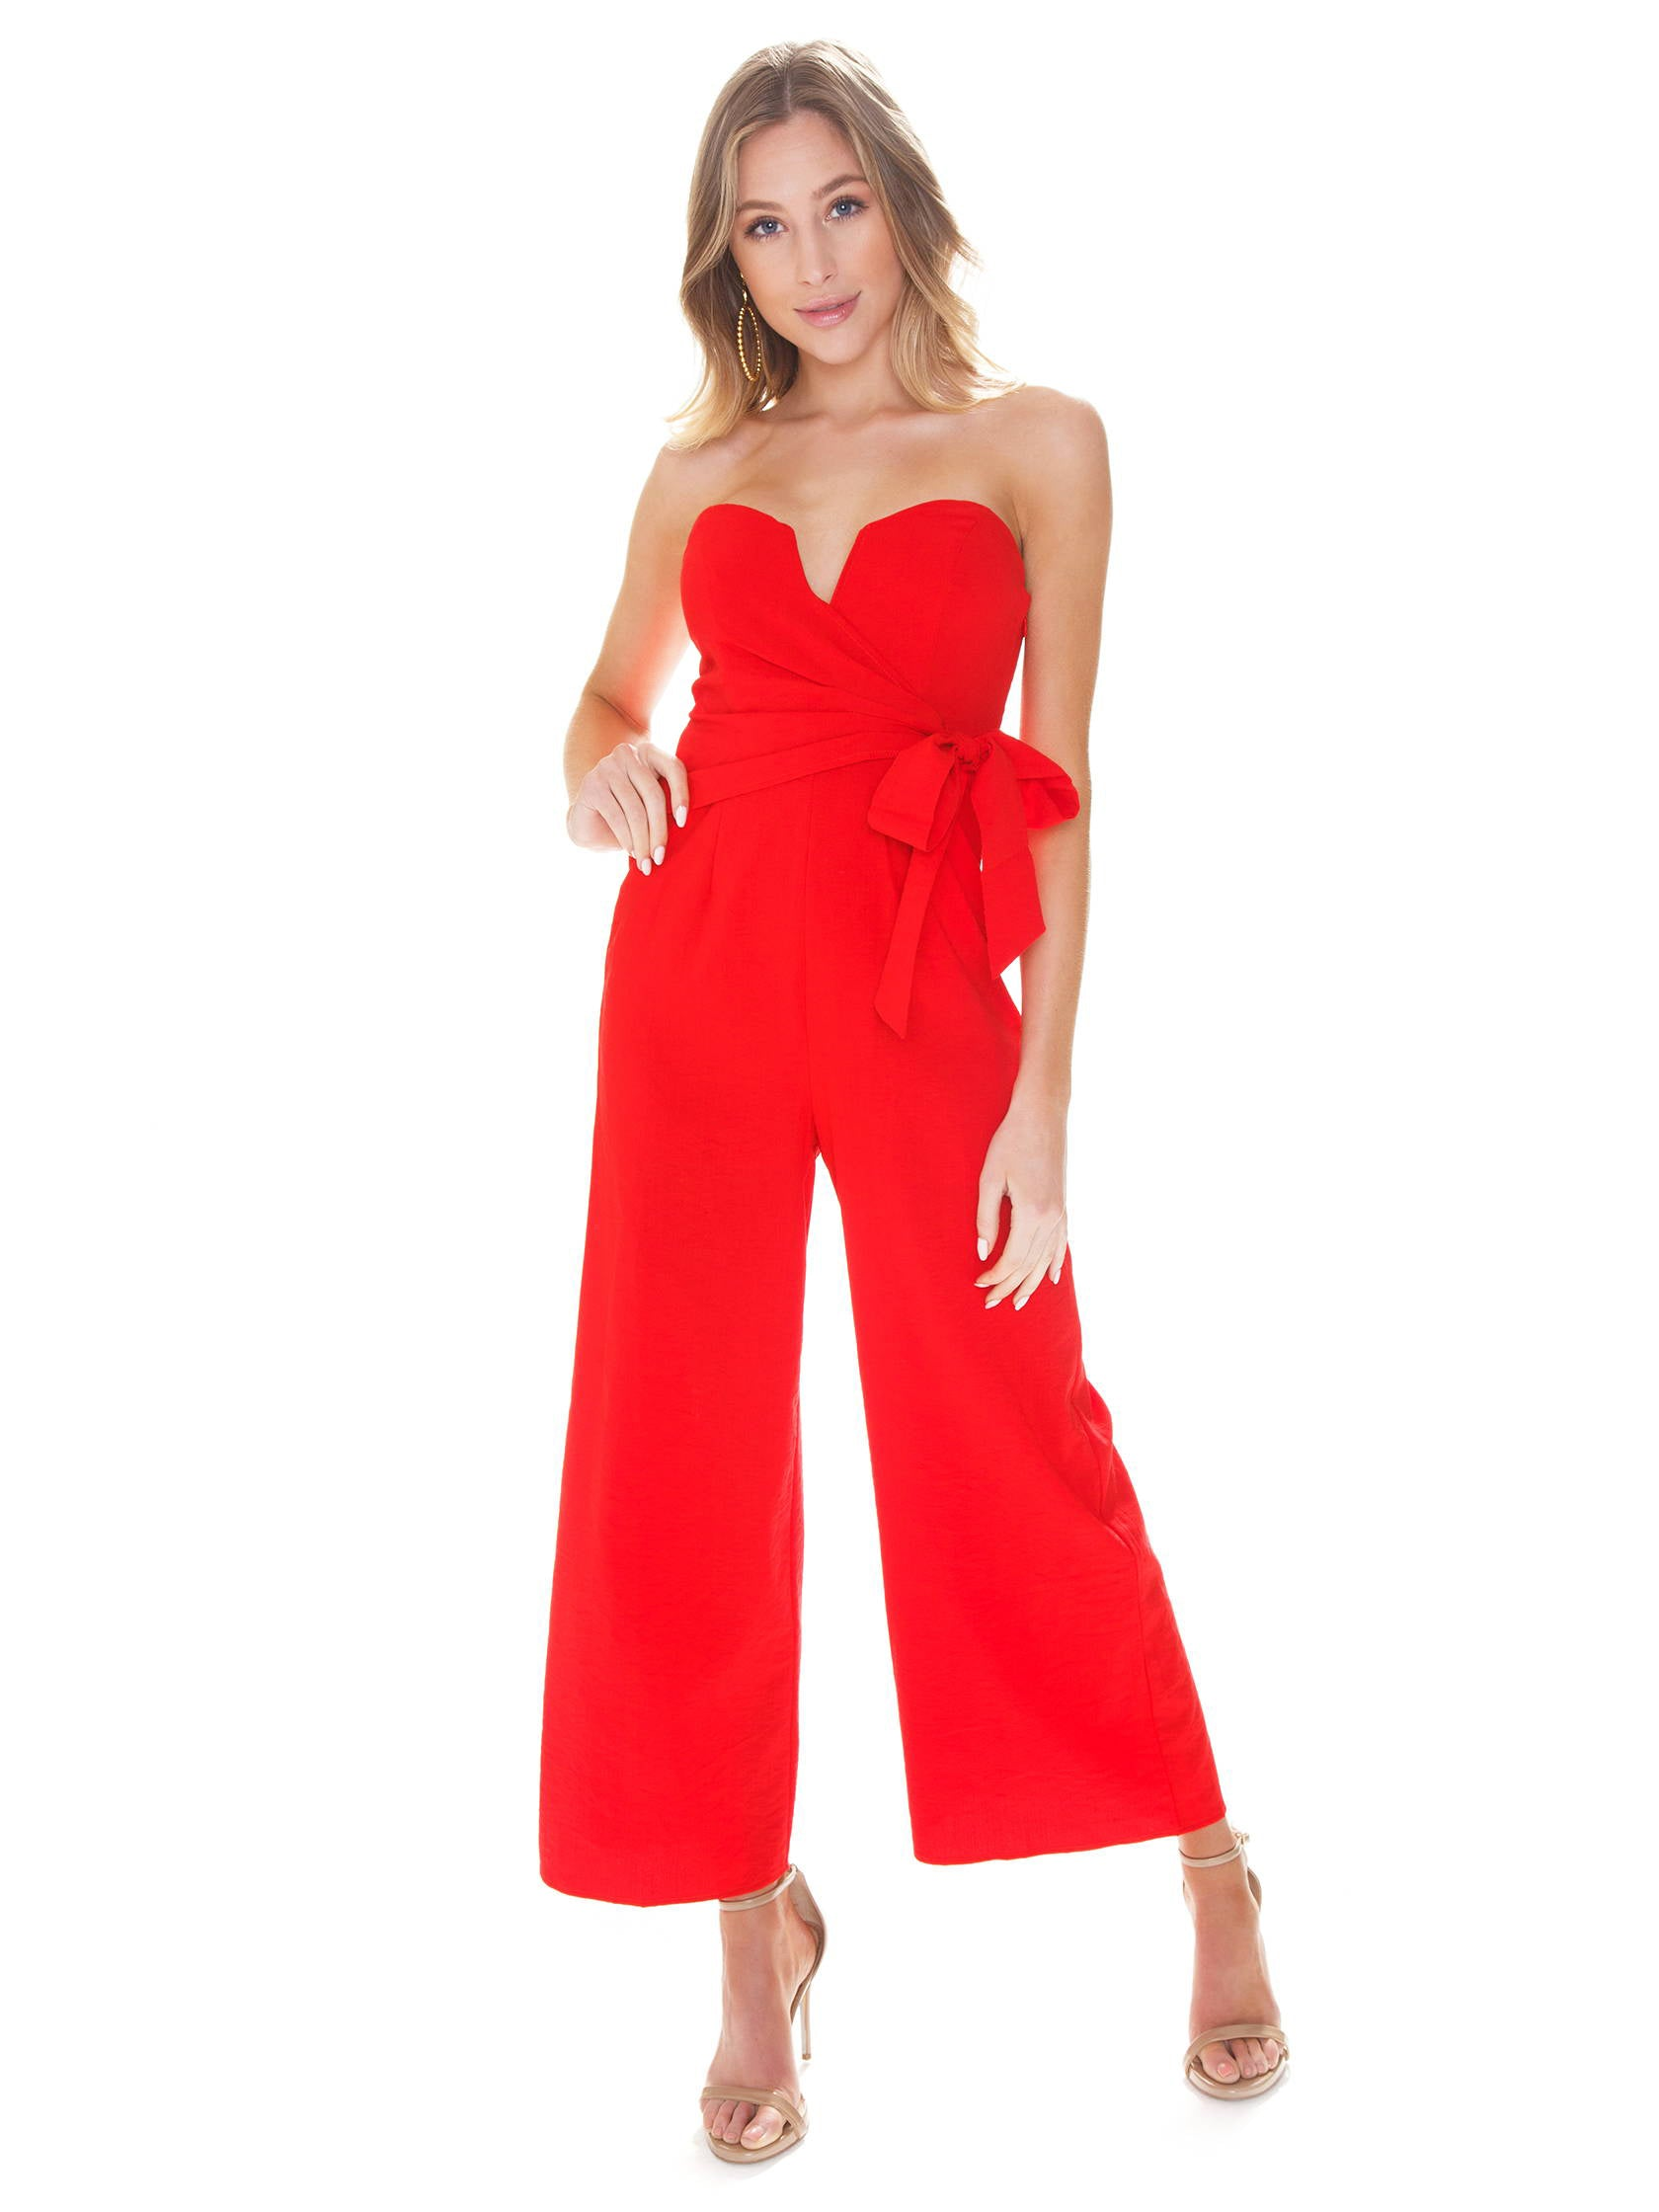 Girl outfit in a jumpsuit rental from ASTR called Zion Jumpsuit